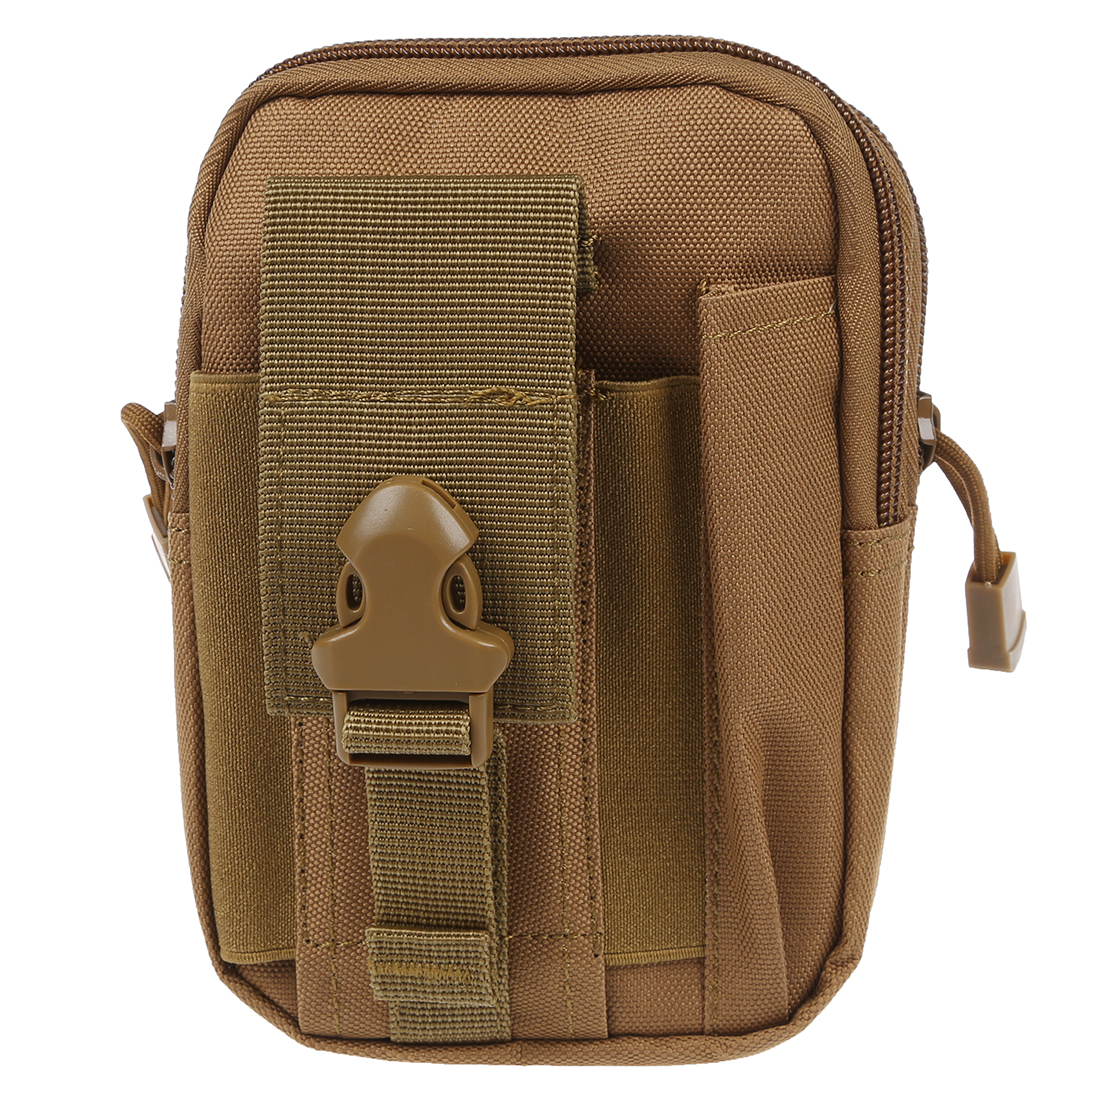 Molle Waist Bags Men's Casual Waist Pack Purse Mobile Phone Case for Phone Sand